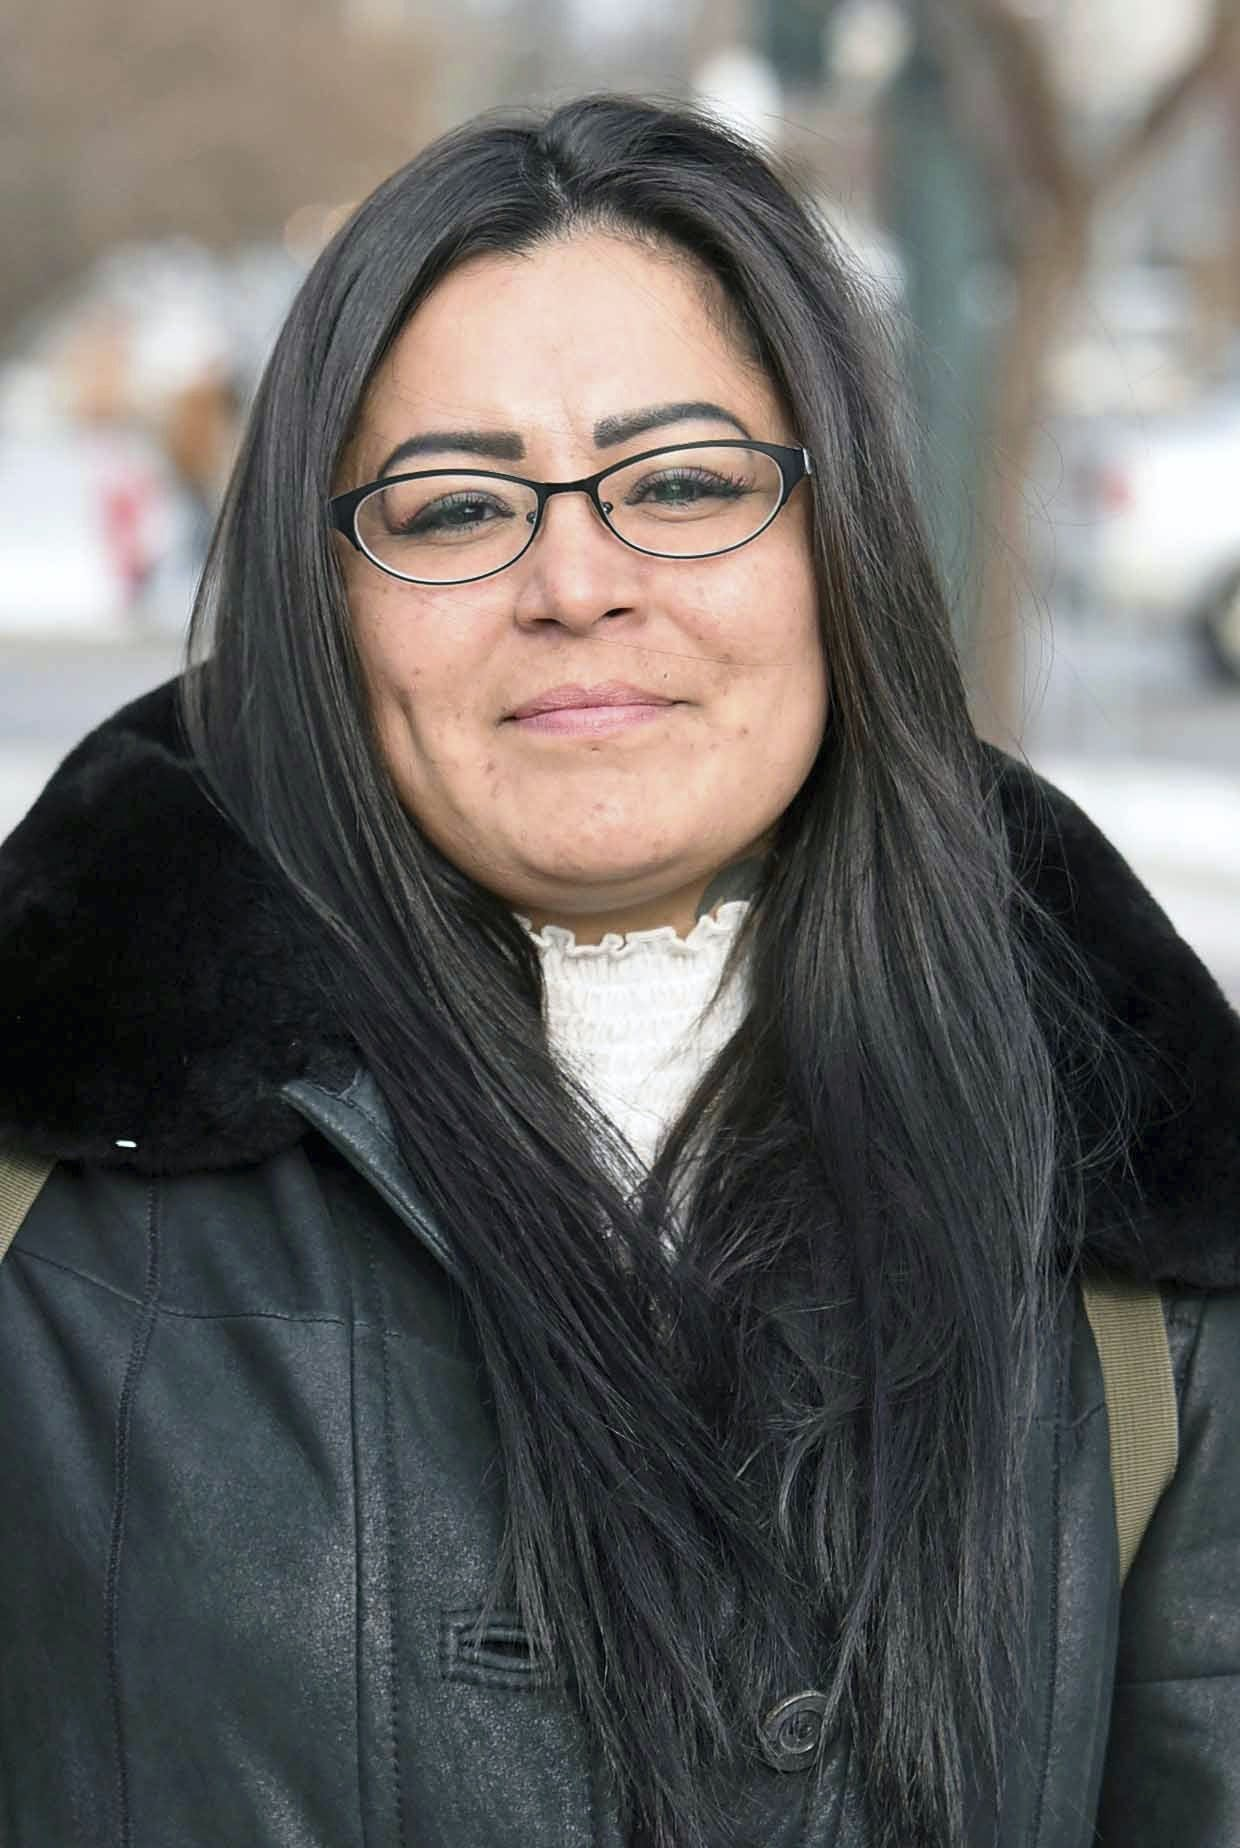 Red Fawn Fallis smiles outside the Federal Courthouse in Bismarck, N.D., on Friday, Dec. 8, 2017. Fallis was in court for a hearing on charges related to protests against the Dakota Access Pipeline. (Tom Stromme /The Bismarck Tribune via AP)